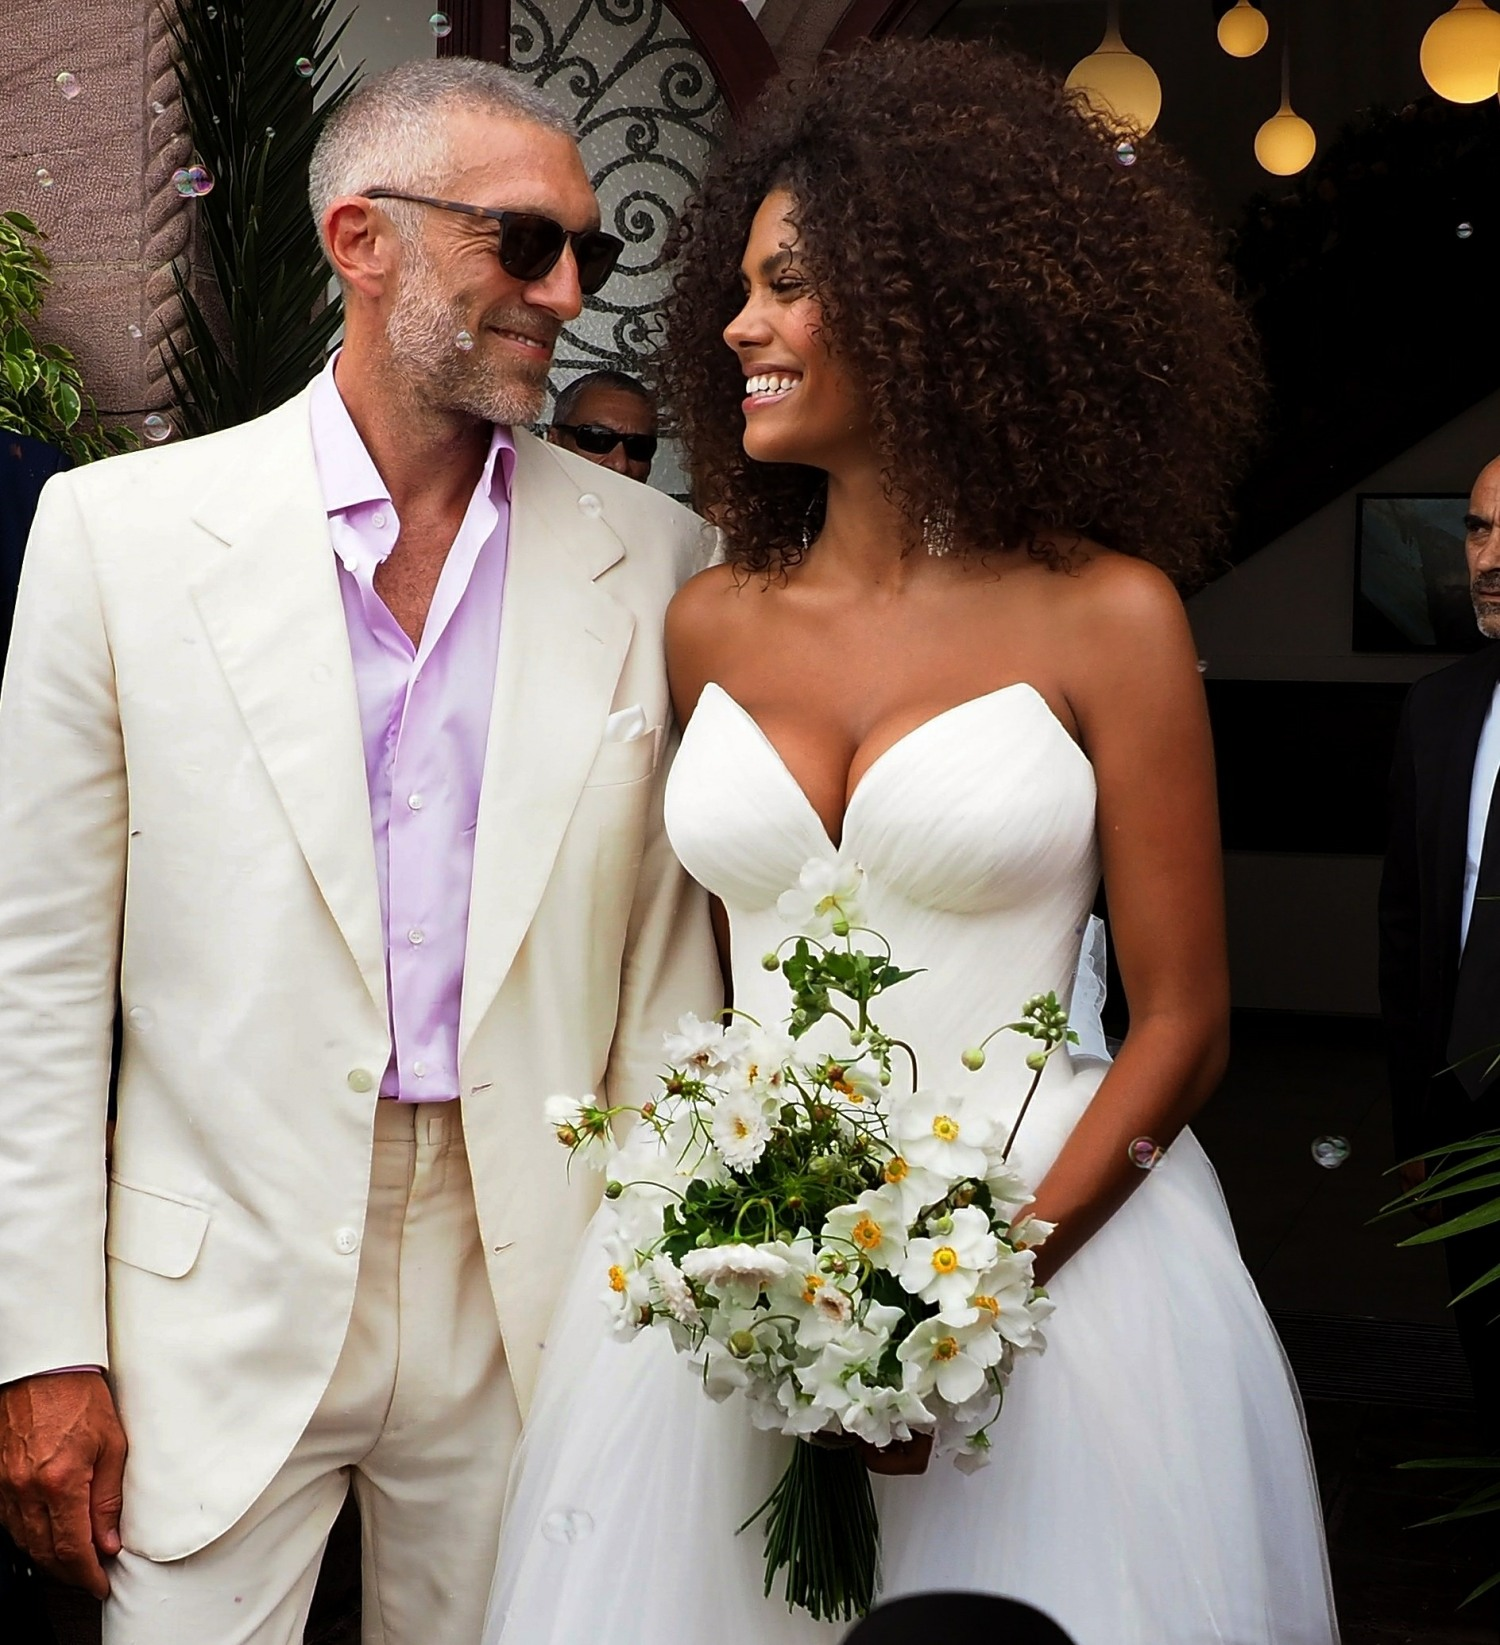 Vincent Cassel and Tina Kunakey tie the knot in the Basque Country